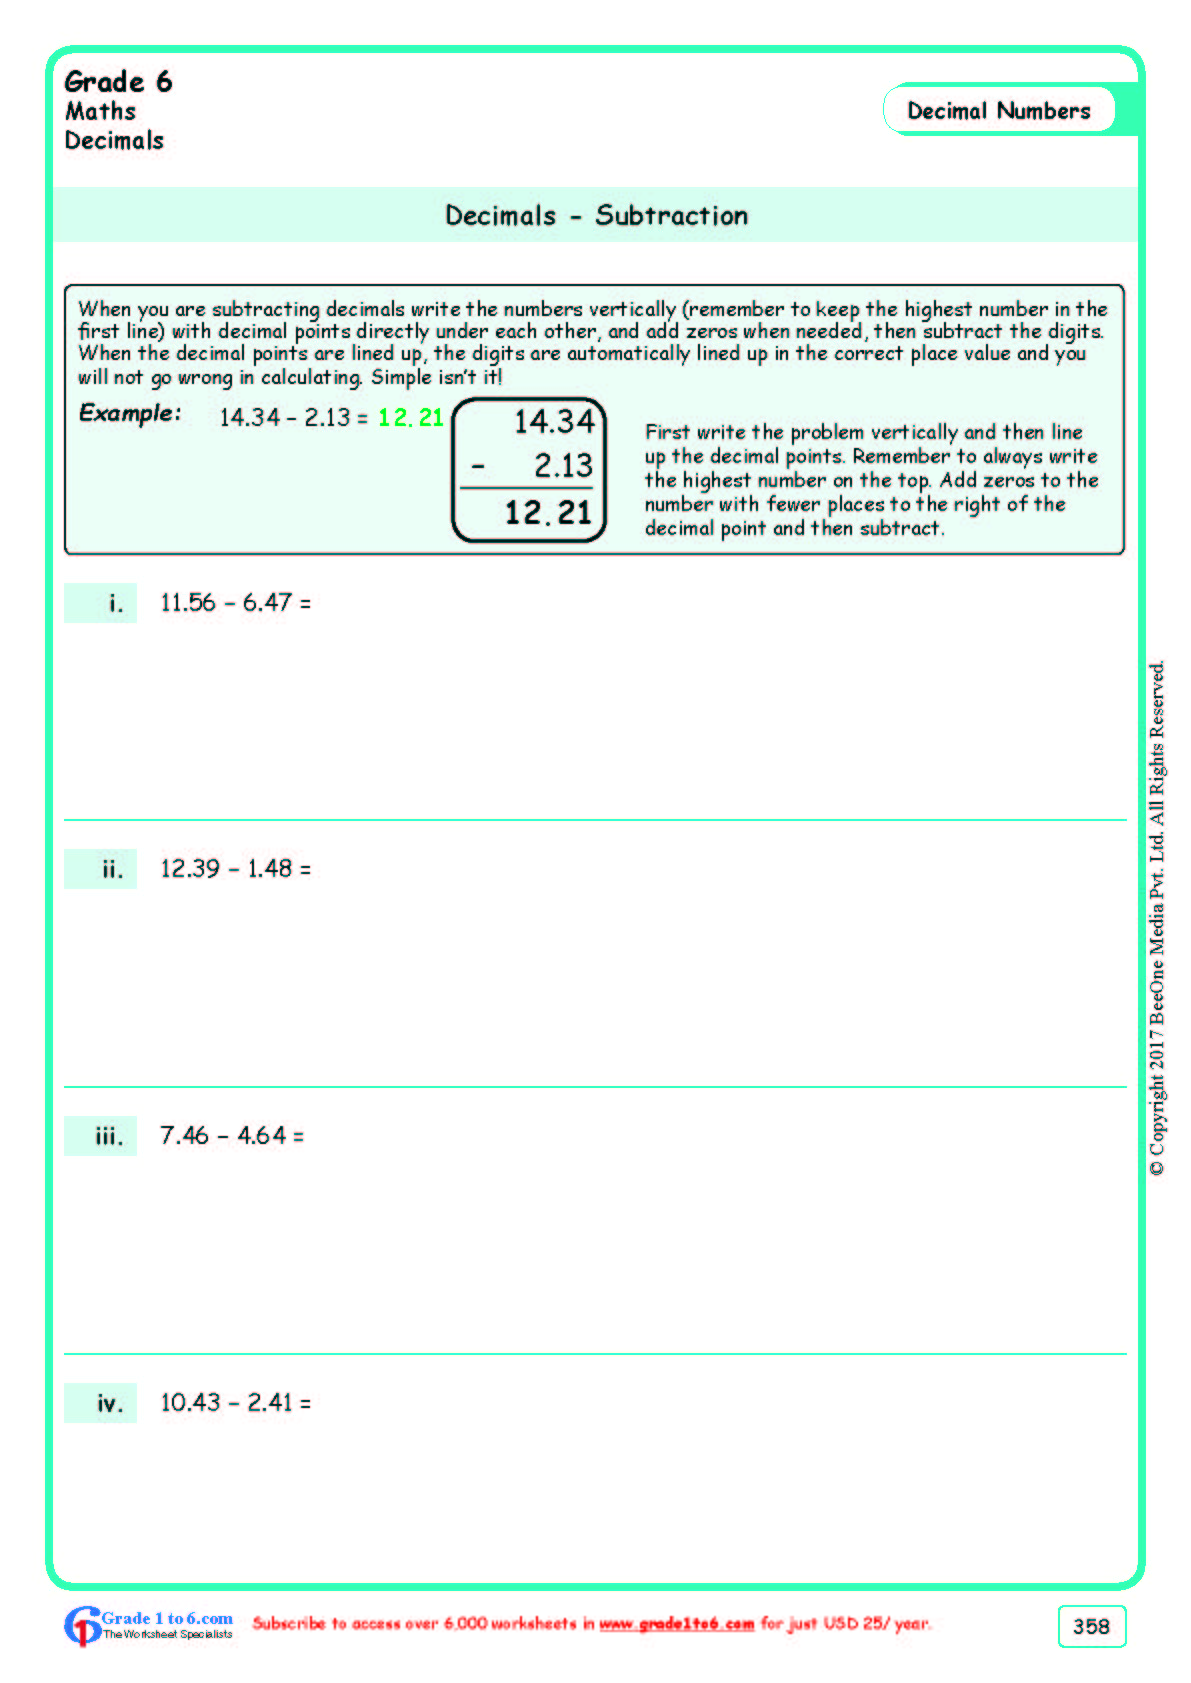 hight resolution of Subtracting Decimals Worksheets  Grade 6  www.grade1to6.com